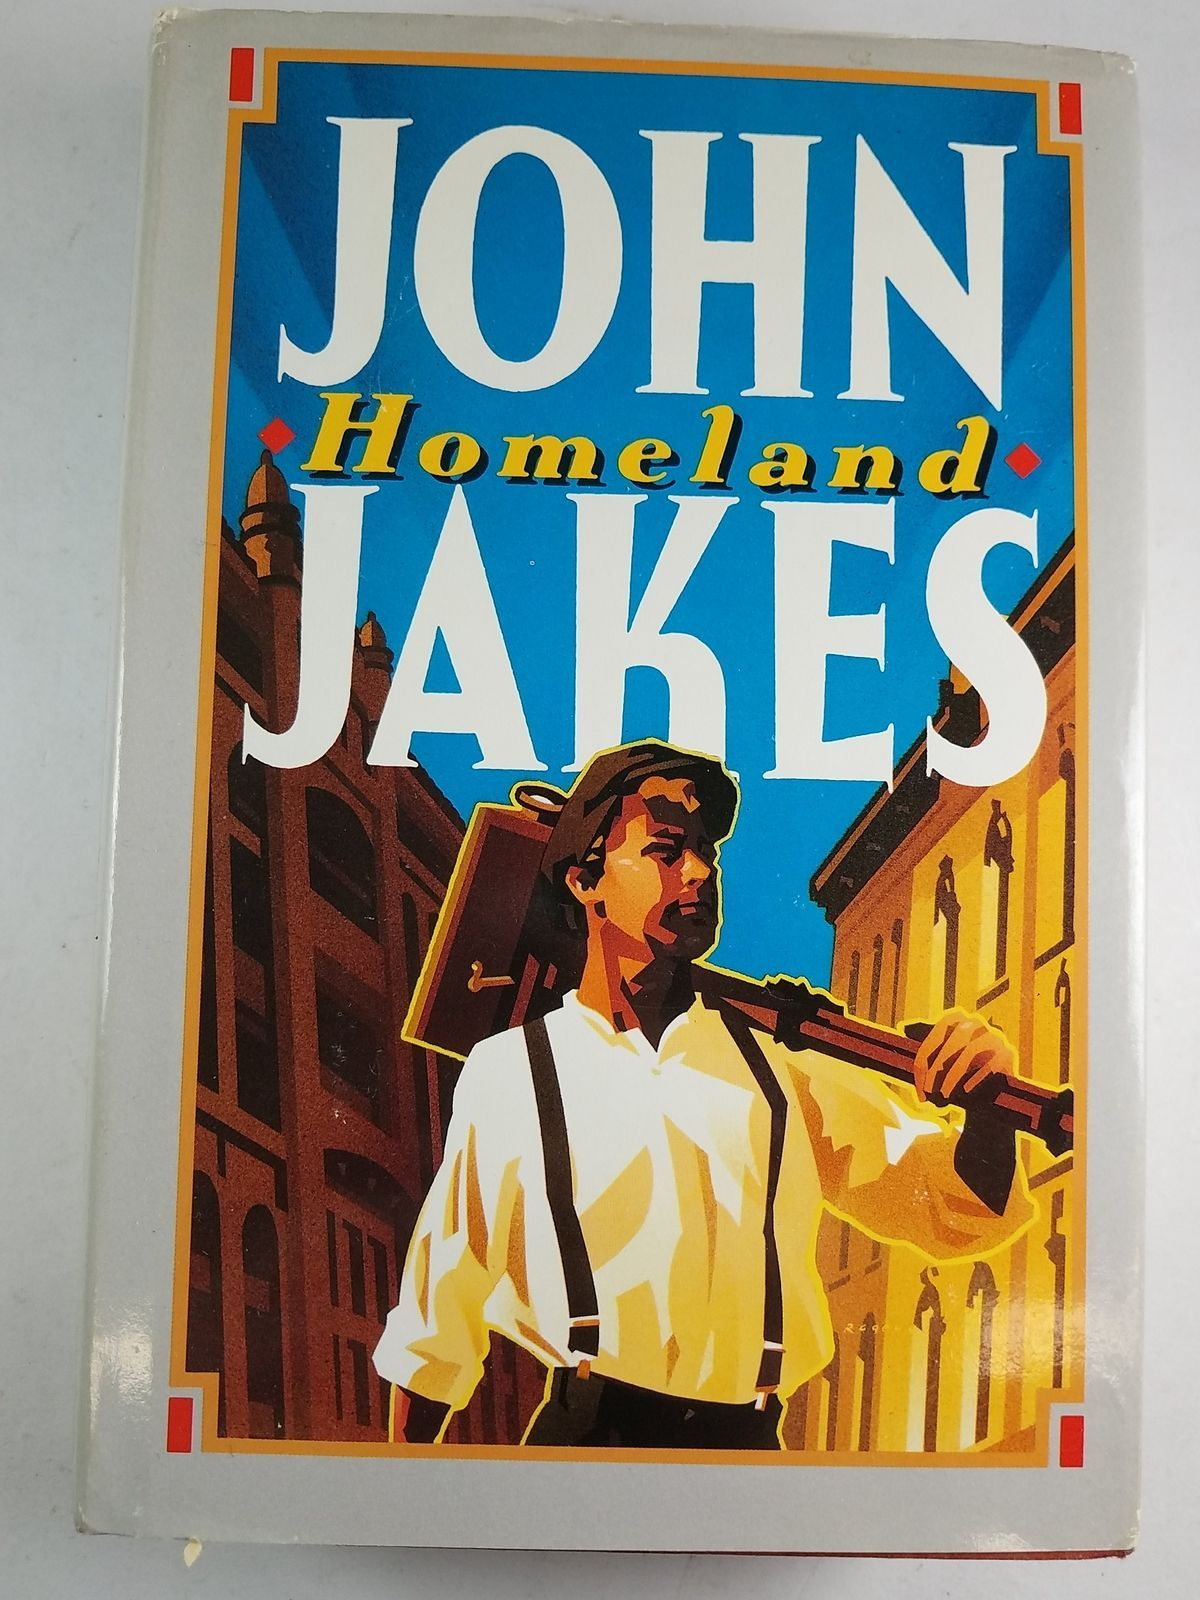 an analysis of the novel homeland by john jake Immediately download the homeland summary, chapter-by-chapter analysis, book or teach homeland by john jakes historical novel, the people's author.